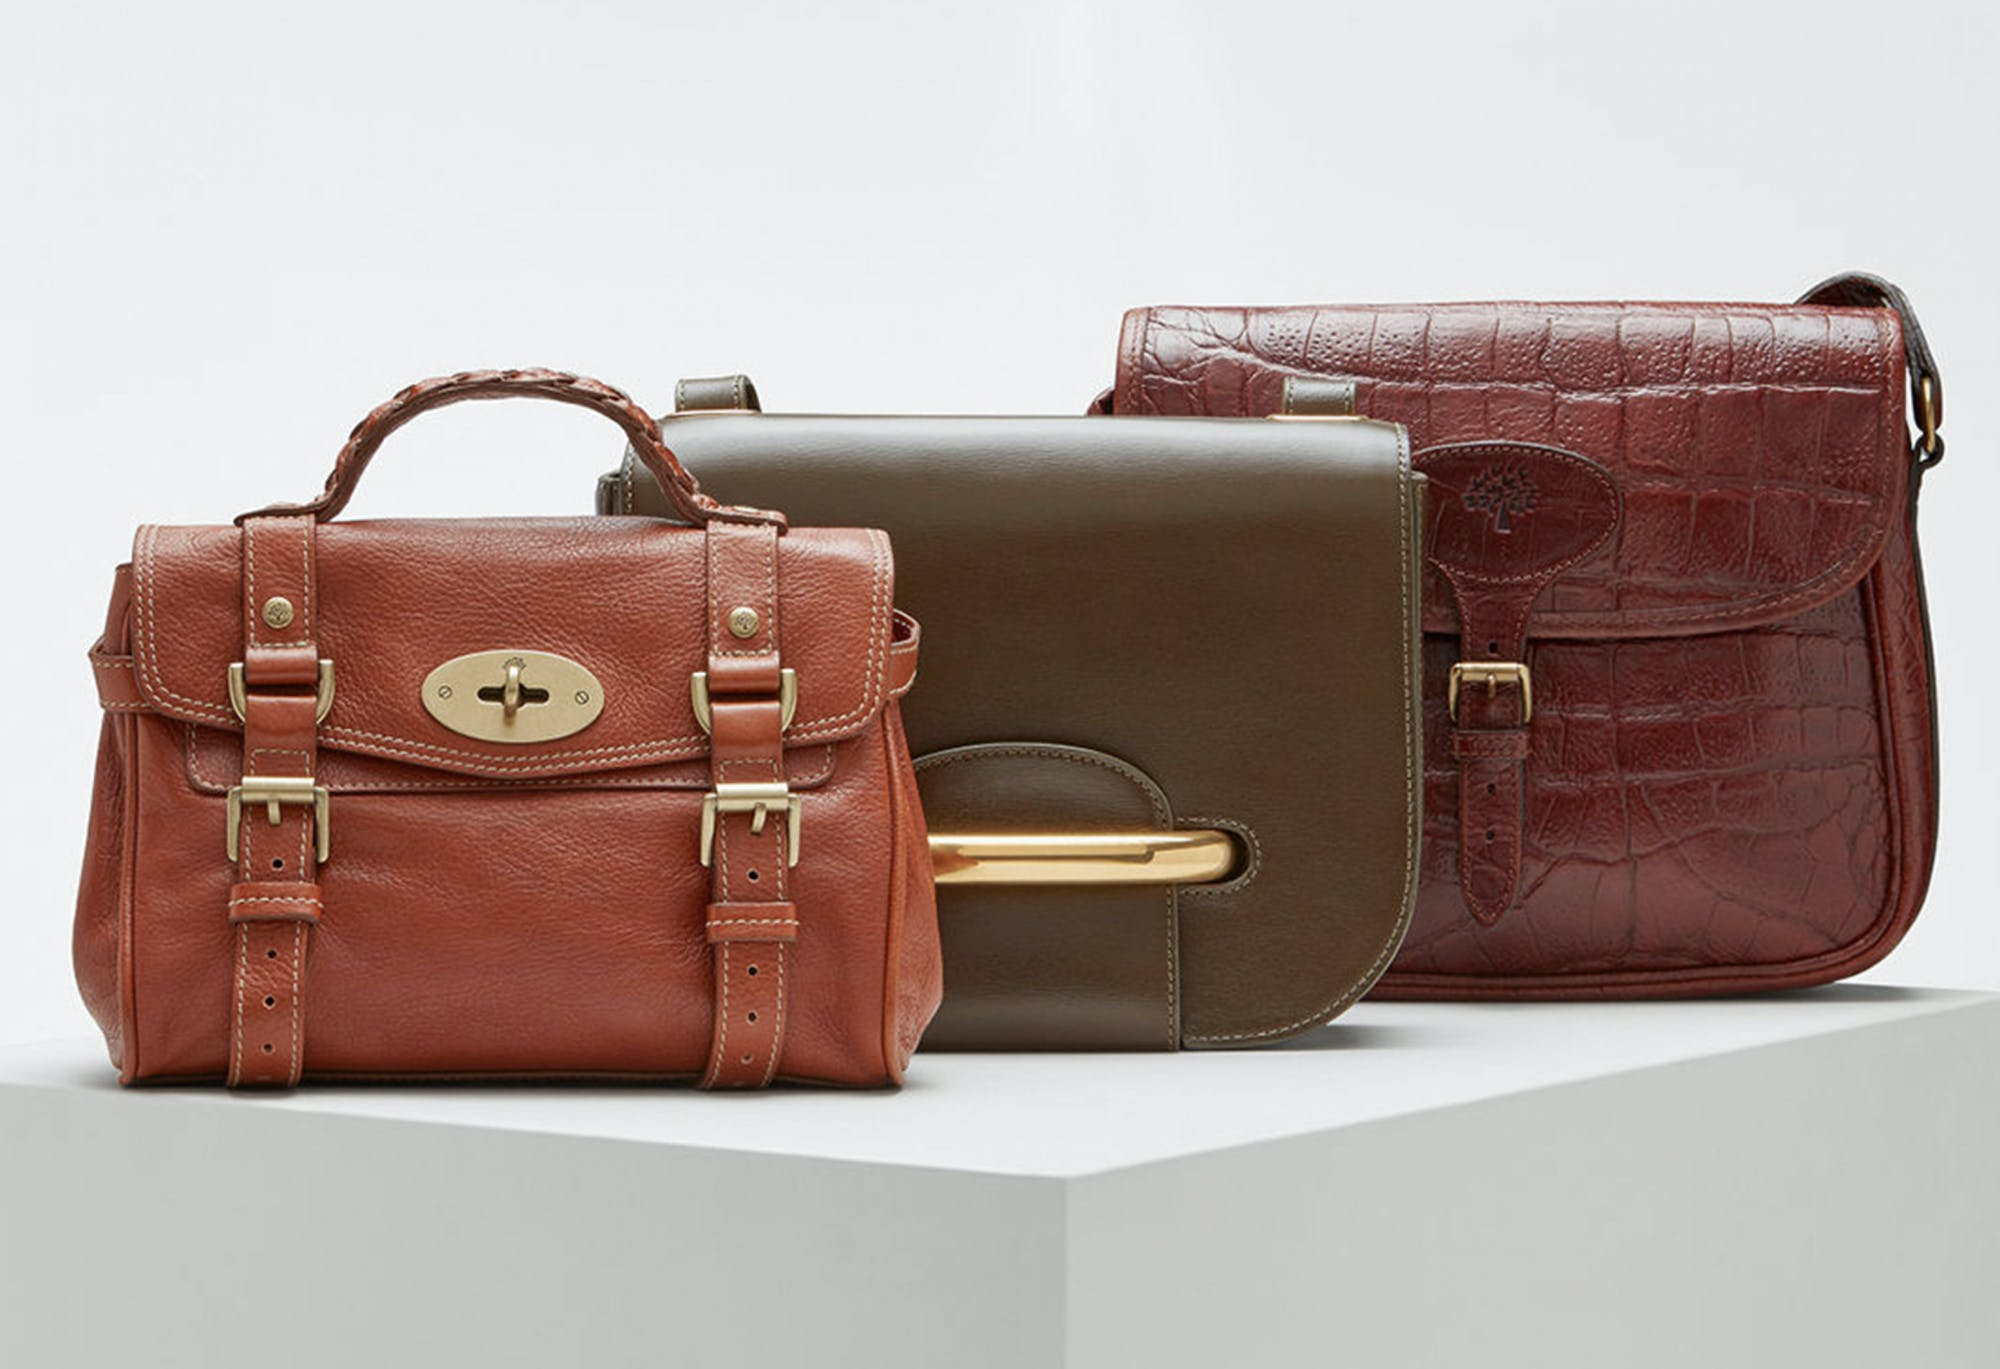 British Luxury Sustainability Report The Case Studies: The Mulberry Exchange